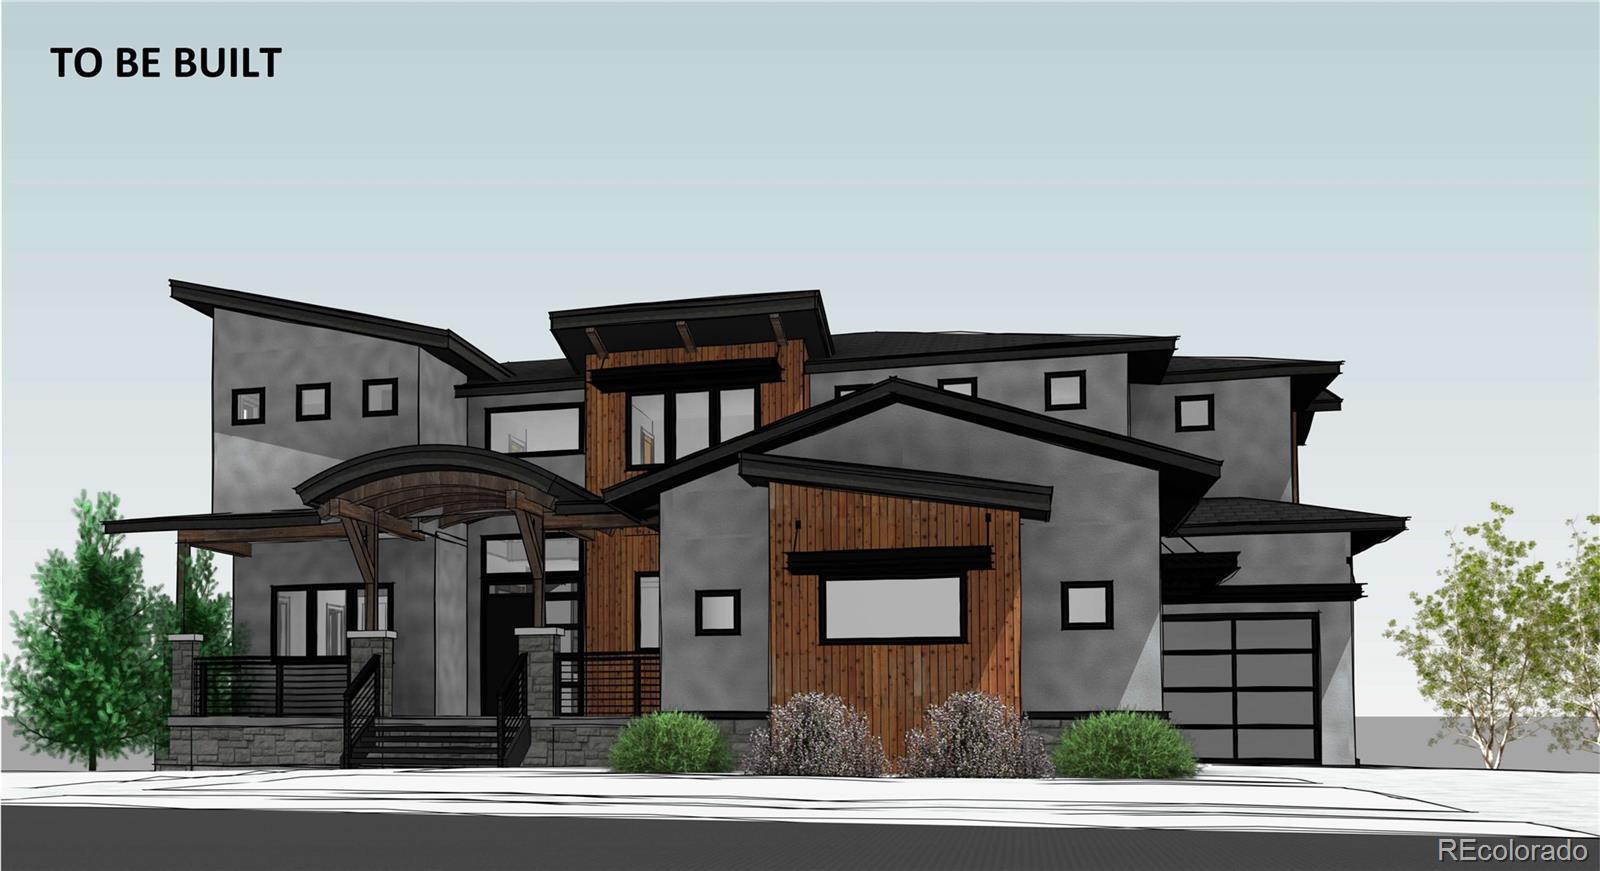 3477 W 154th Place, Broomfield, CO 80023 - #: 2666407